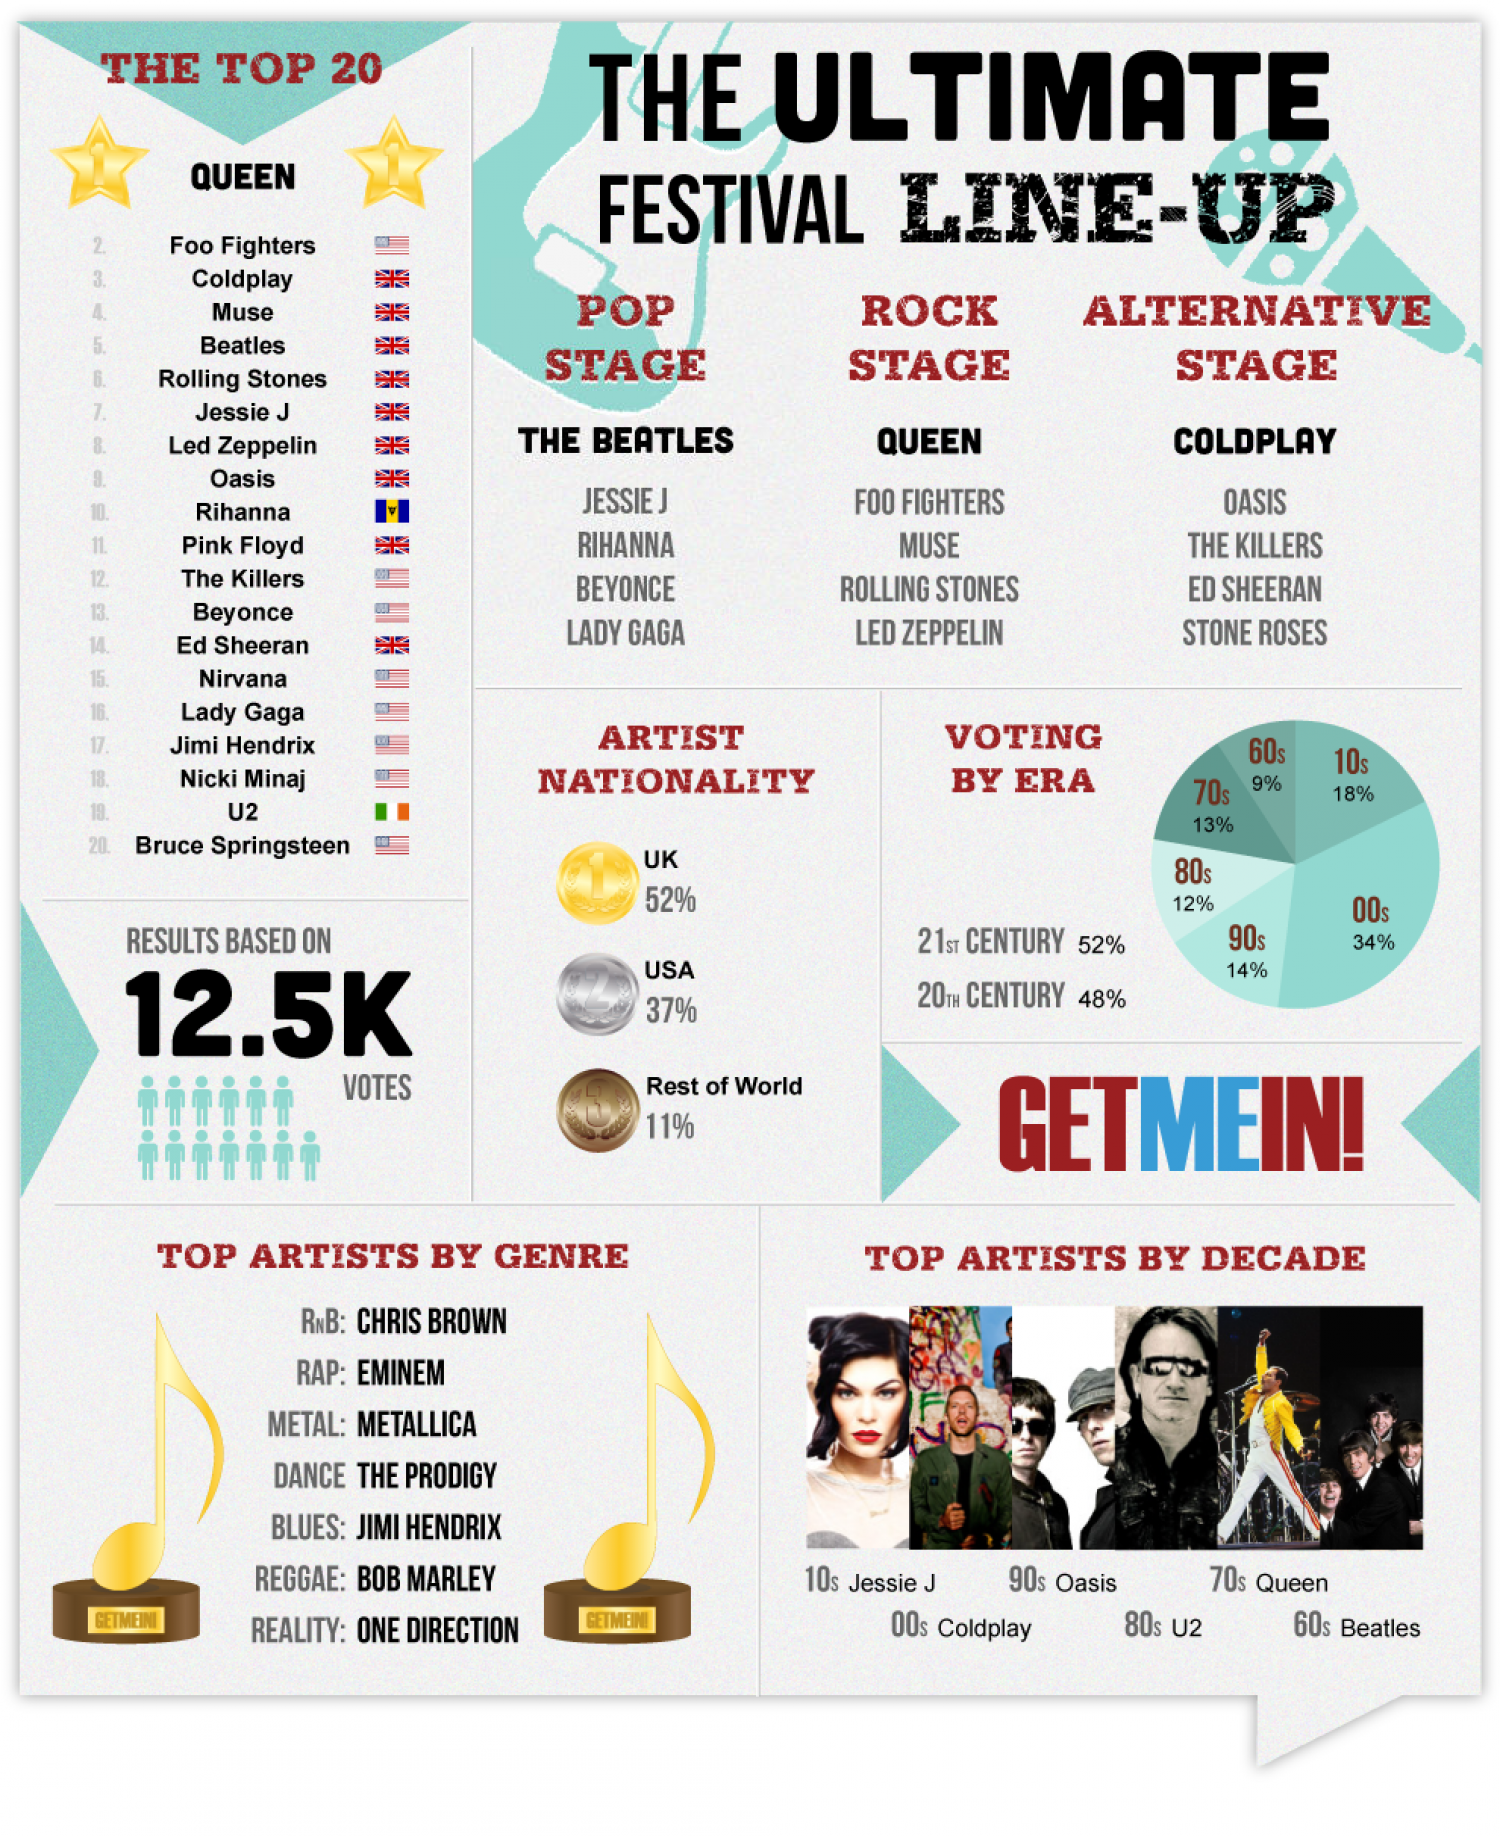 GET ME IN! Ultimate Festival Line-up  Infographic